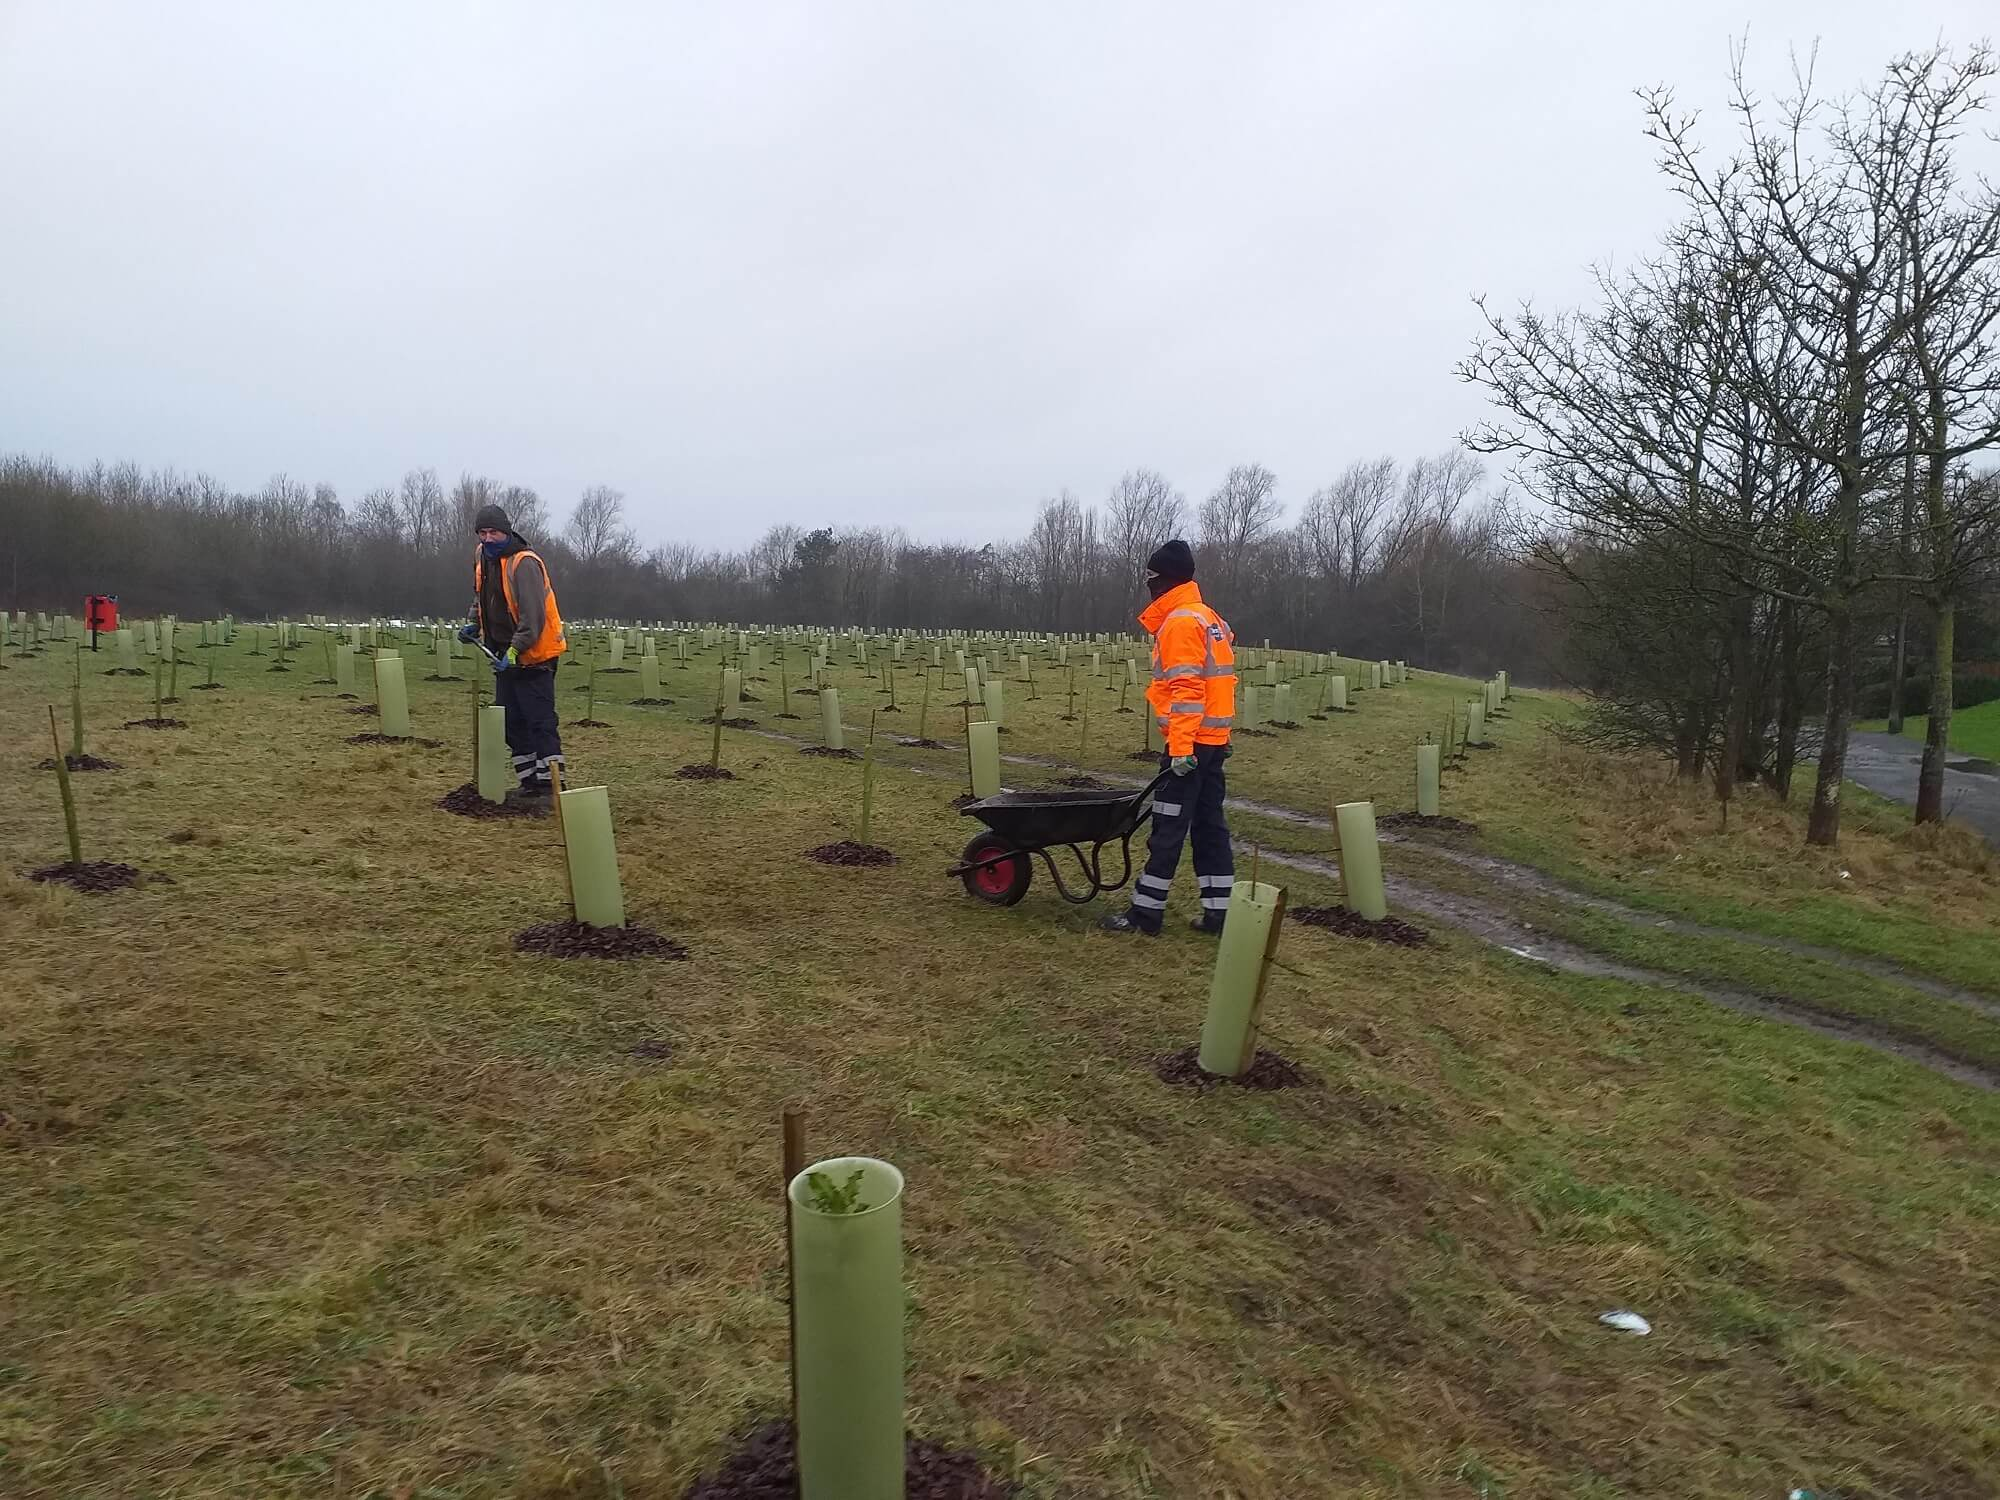 Photo contains 2 council workers planting trees in an open space